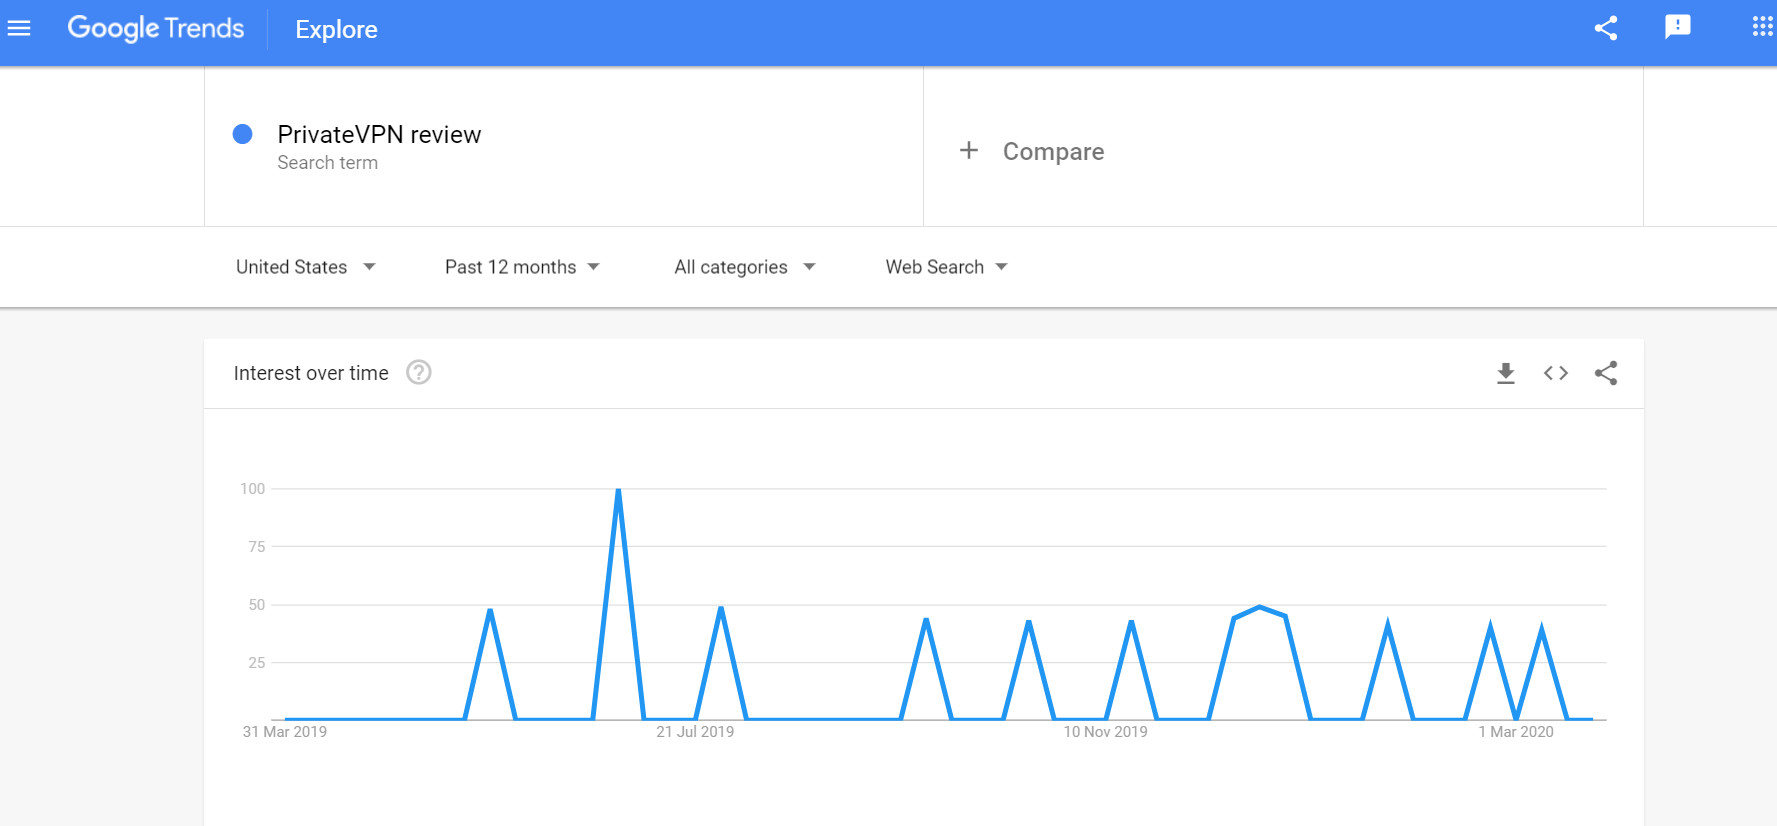 PrivateVPN Review Google Trends